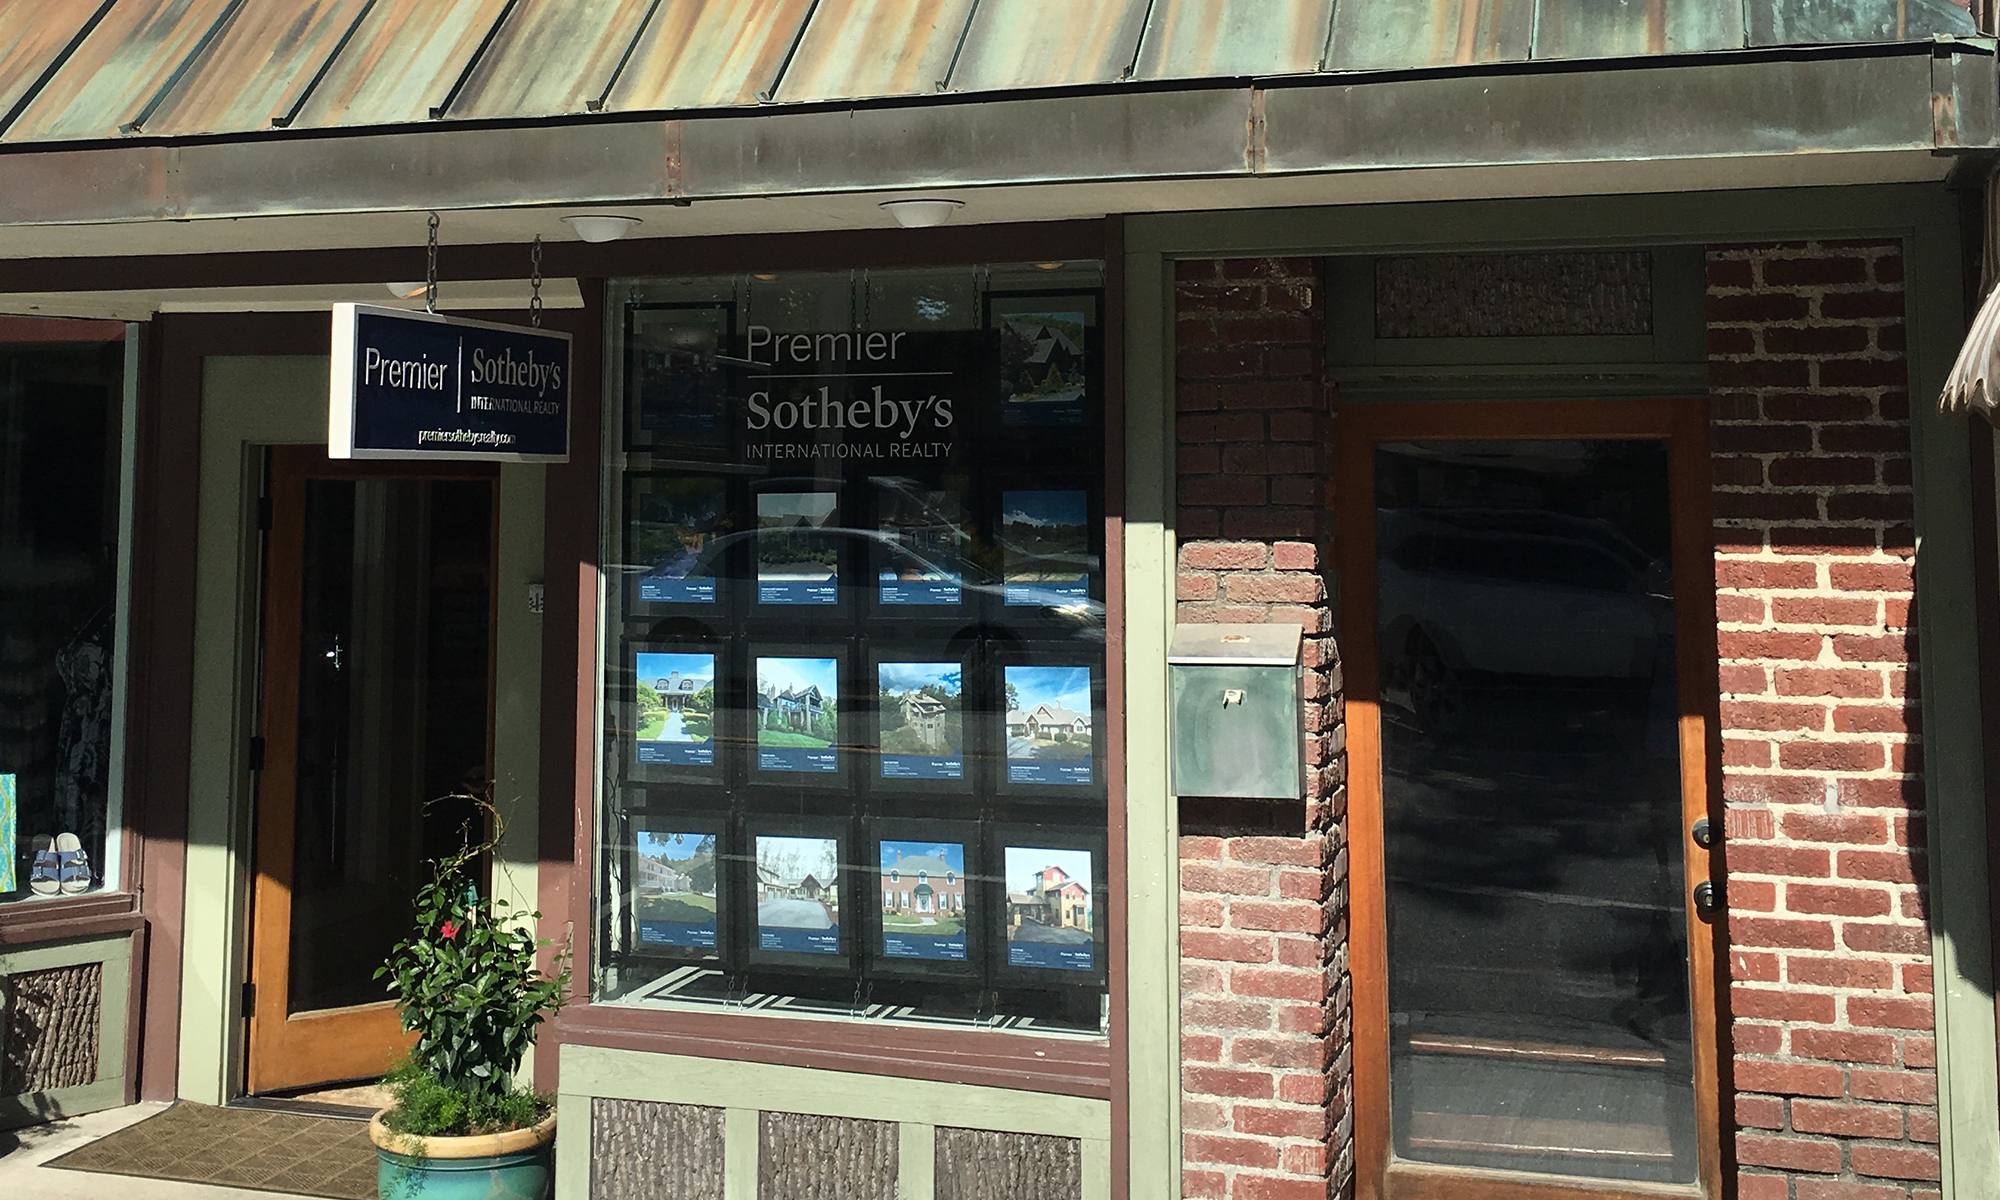 Premier Sotheby's International Realty Blowing Rock on Main